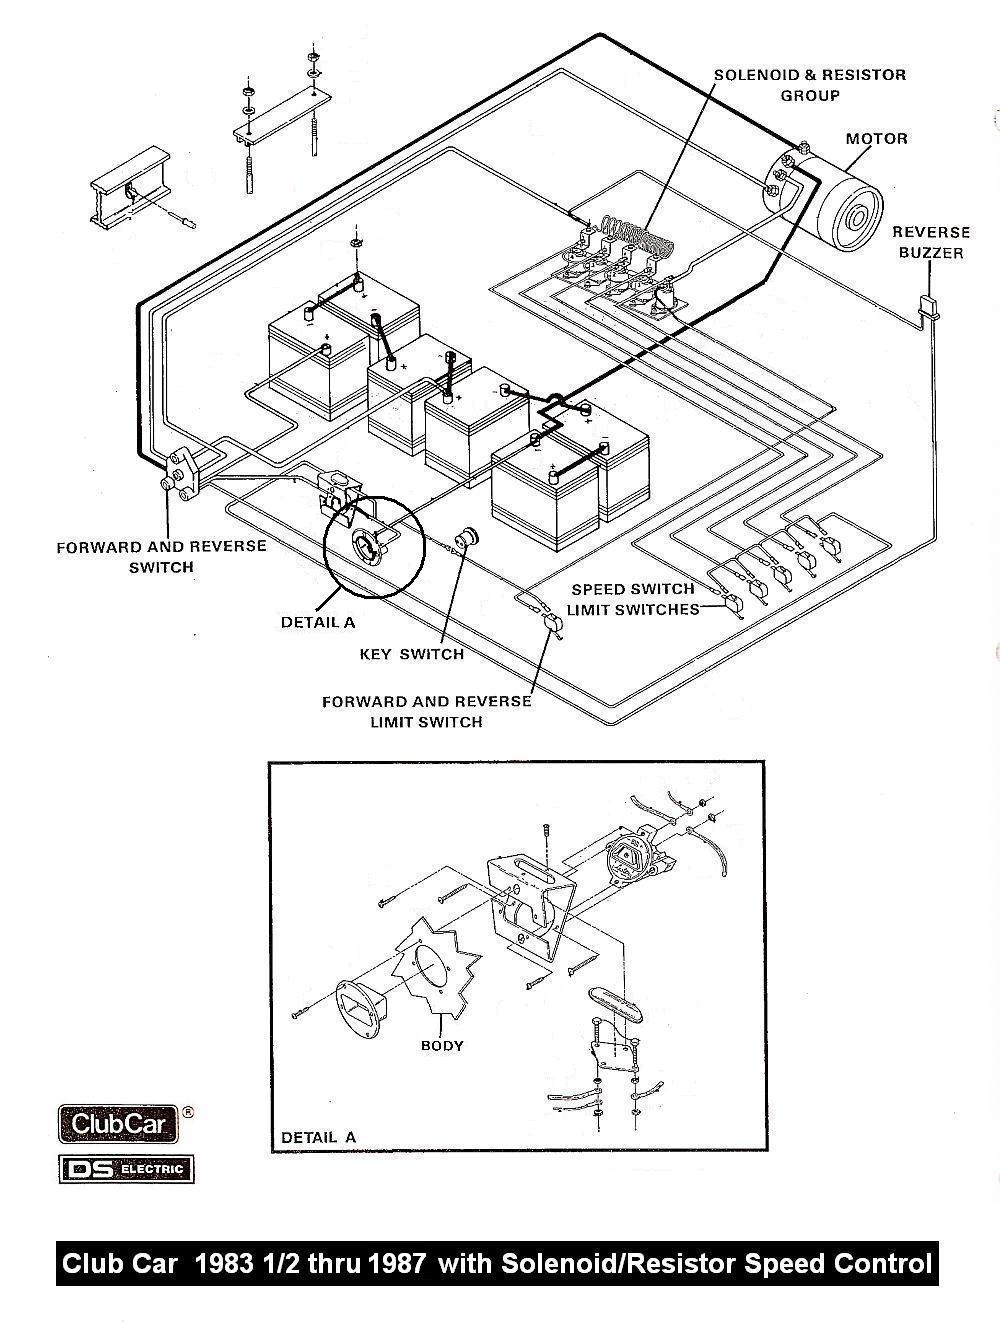 hight resolution of 1983 club car wiring diagram wiring diagram portal john deere wiring diagram club car 36v wiring diagram